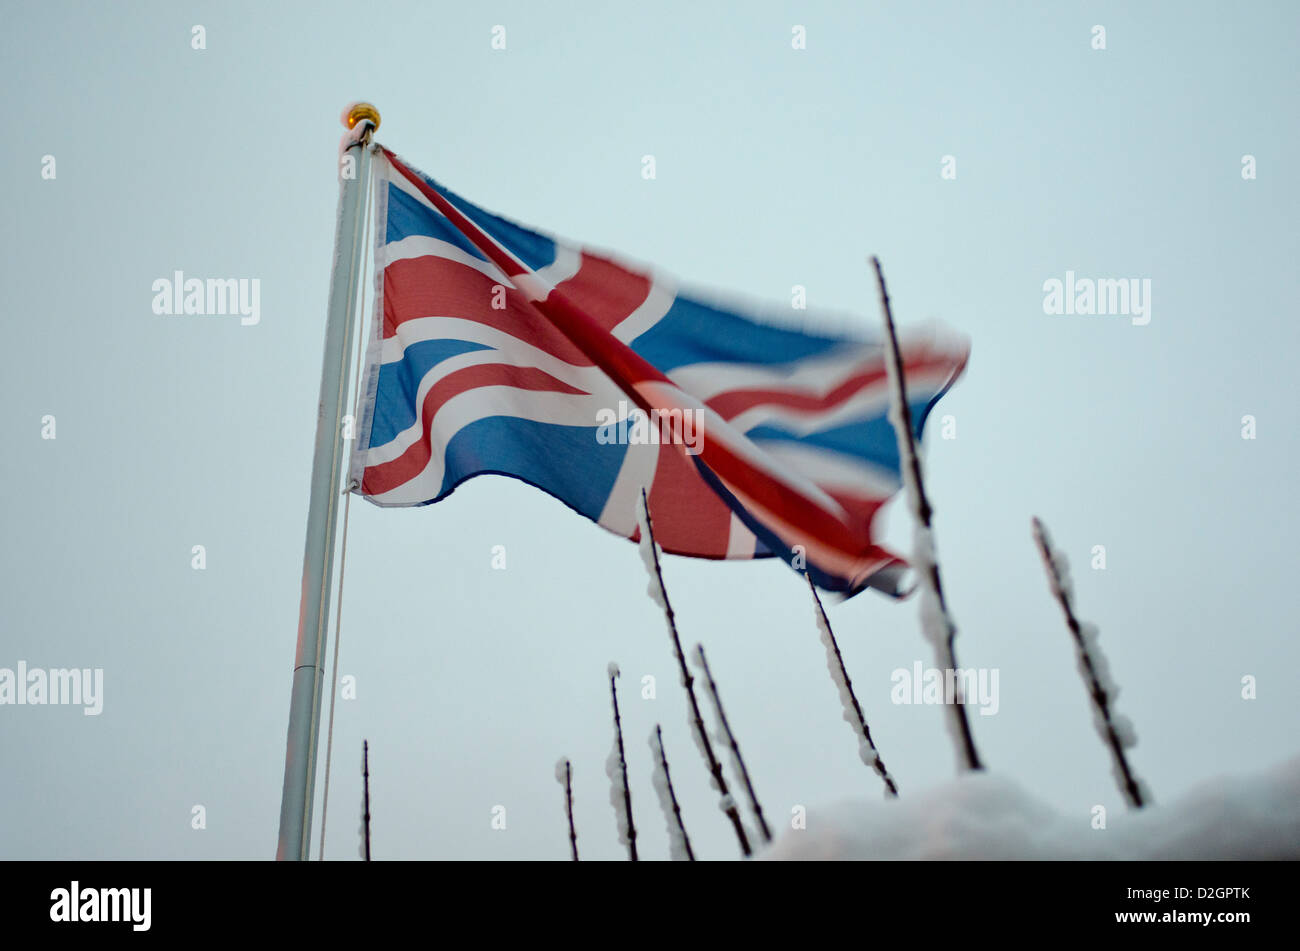 Union jack flag dans la neige Photo Stock